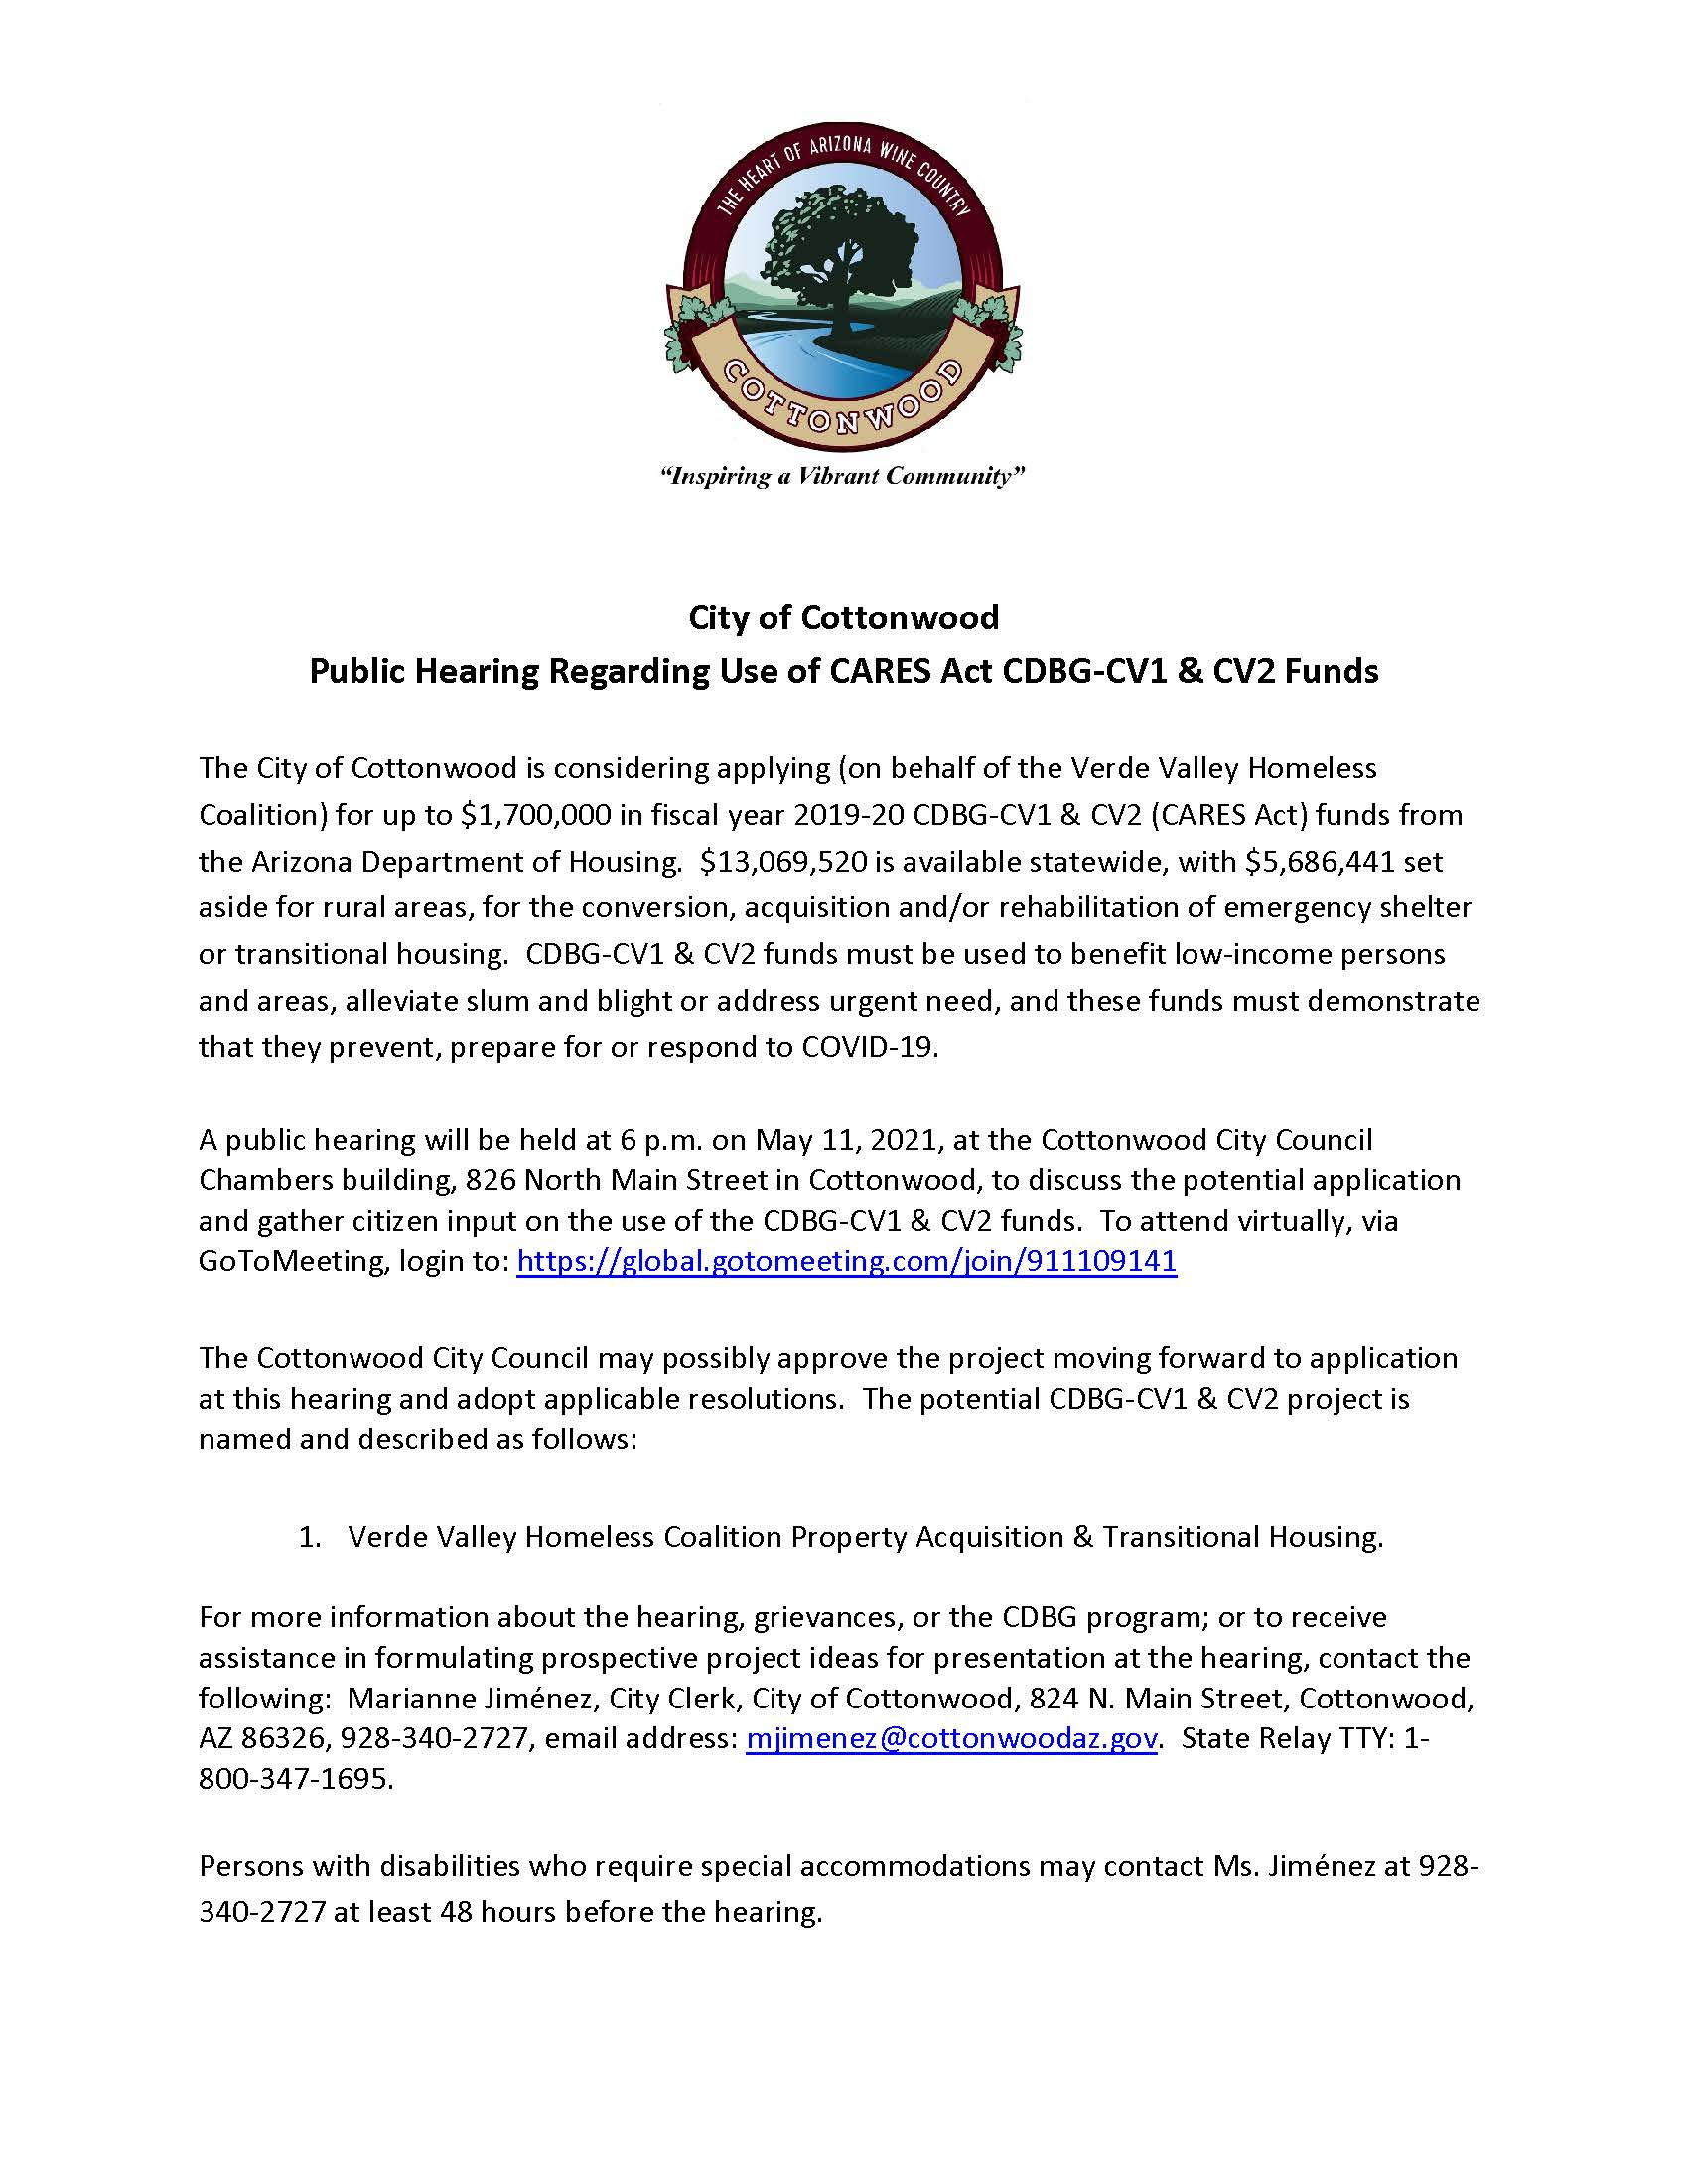 VVHC Second Public Hearing Notice